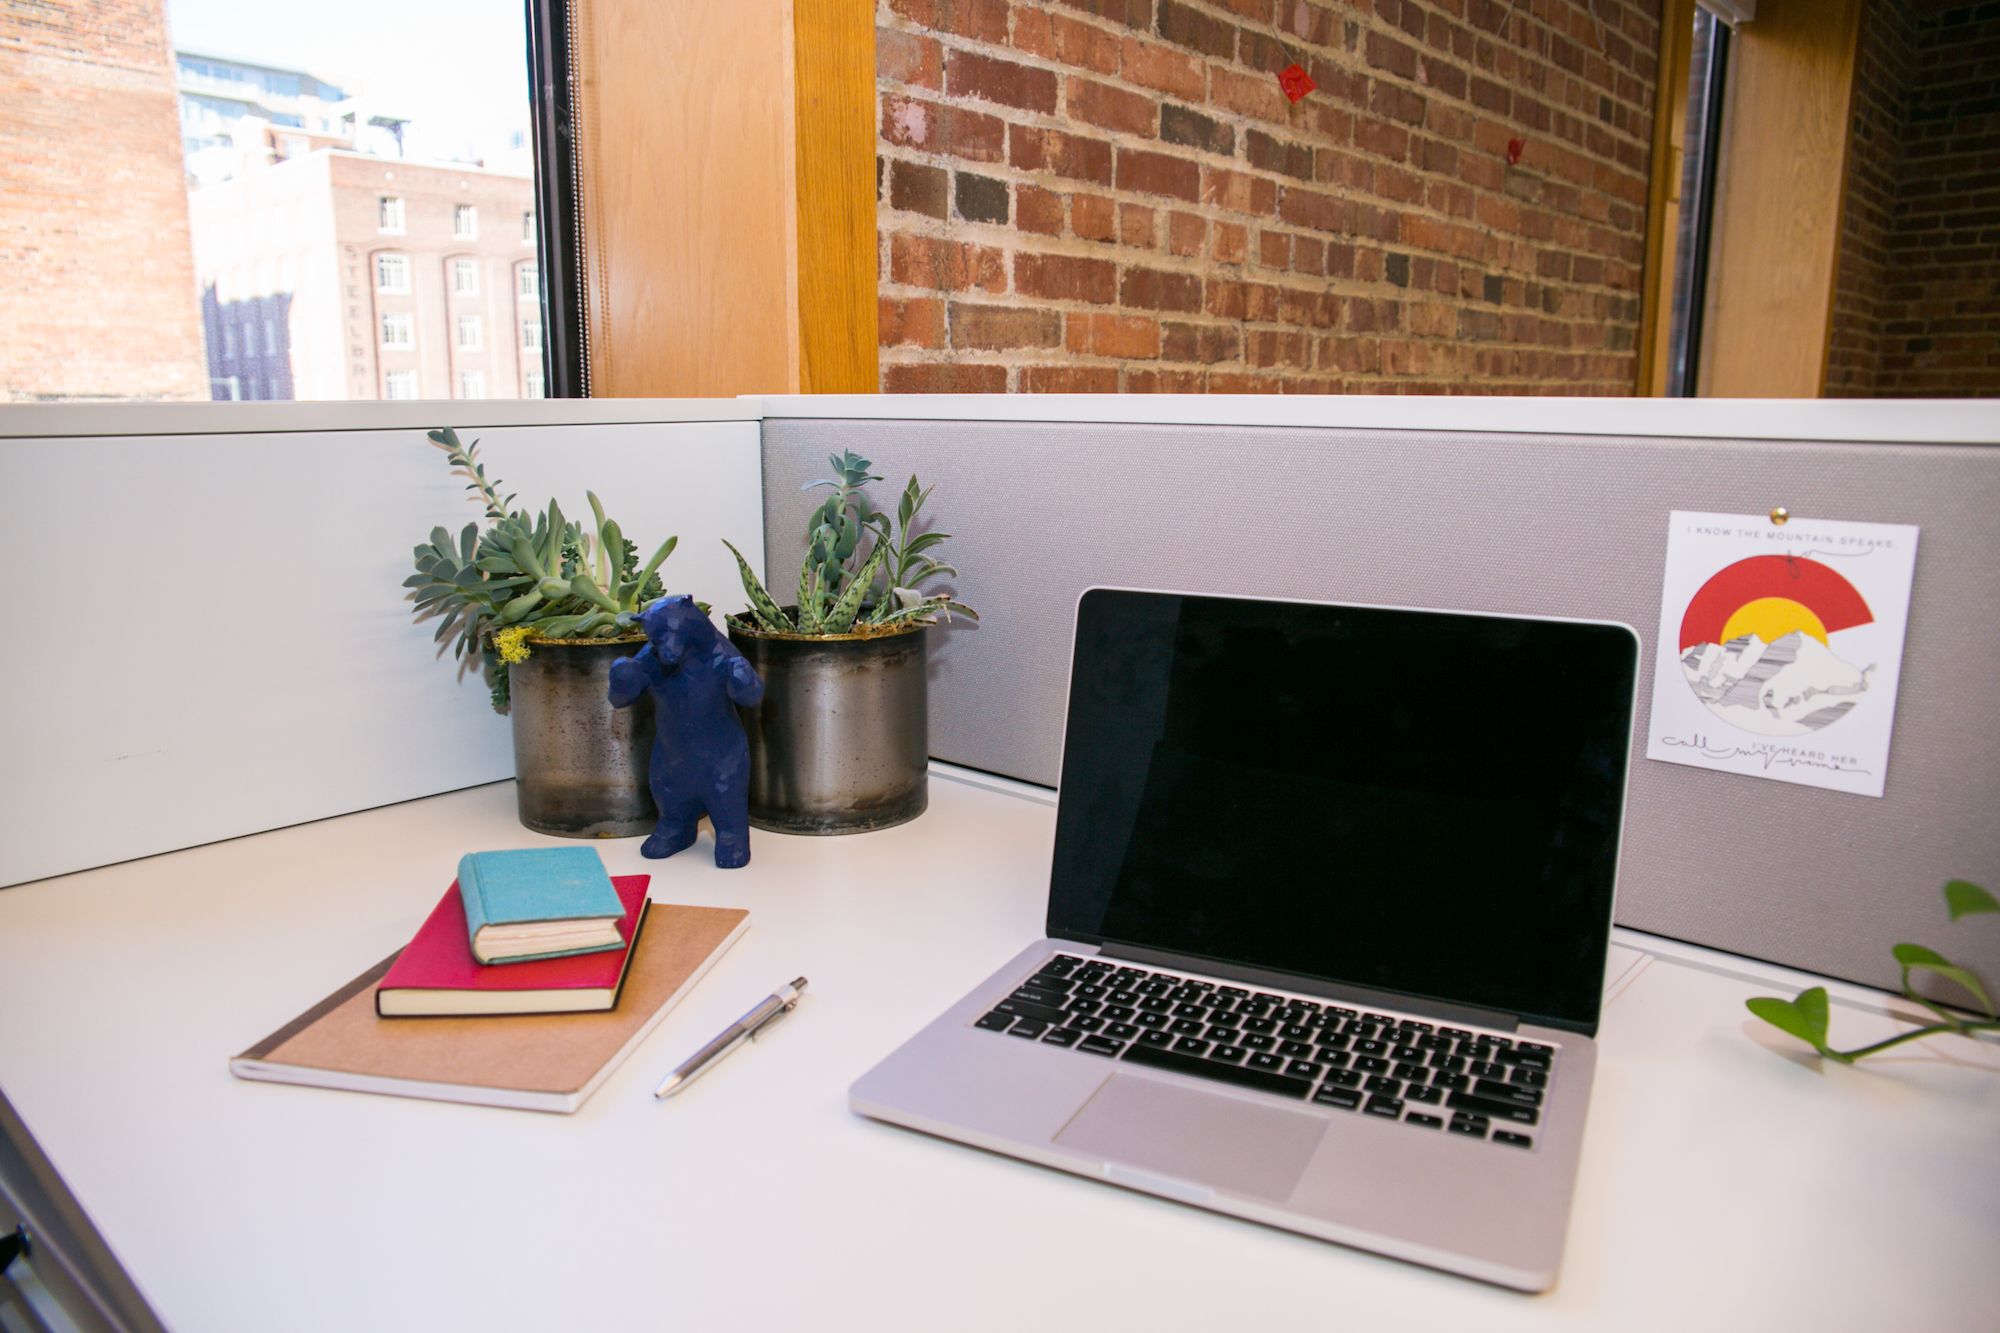 Coworking desk space with laptop, plants and books for tenants